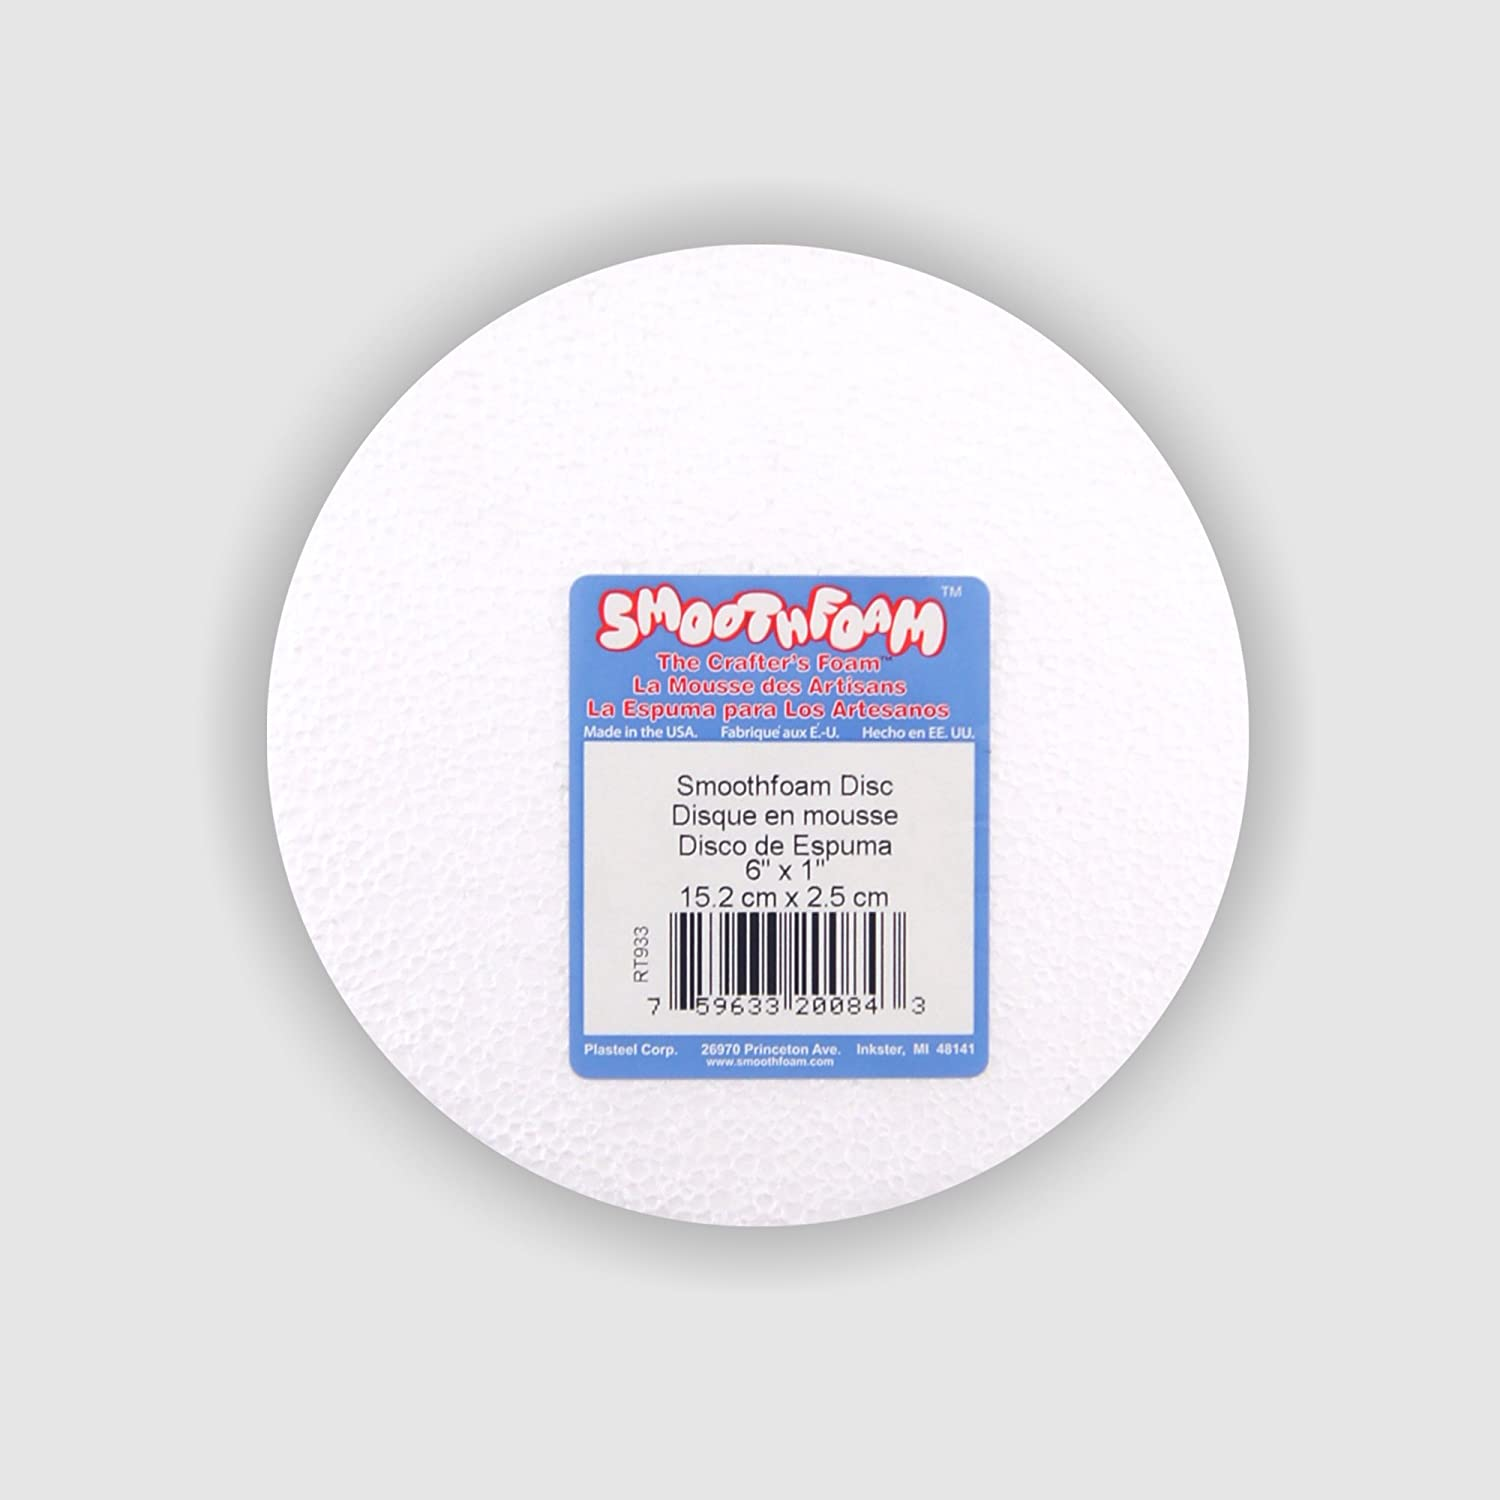 Bulk Sale Special Price safety buy: 12 pack - 6 Smooth in Foam Disc Brand Plasteel